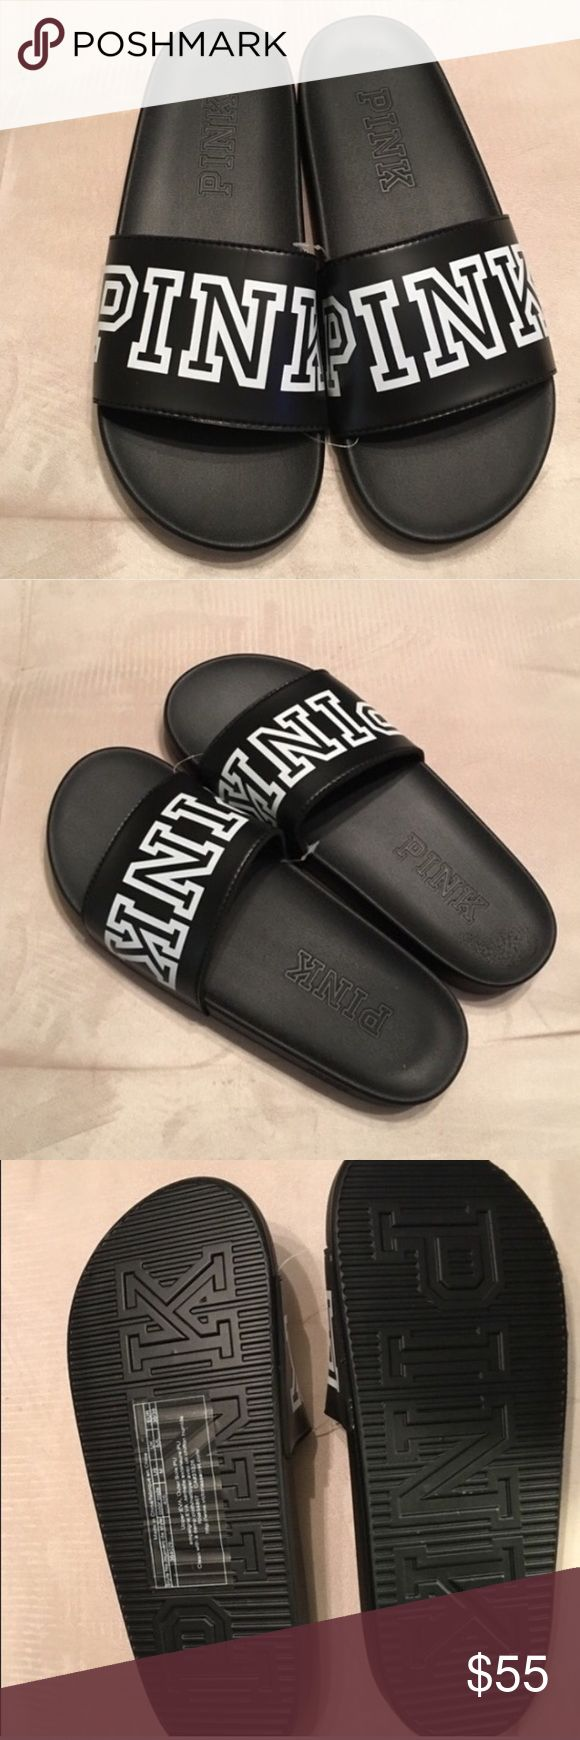 Victoria's Secret pink slides sandals slippers S Victoria's Secret Pink Nation Slides Sandals shoes slippers flip flop slide on.  Size Small 5/6   Brand new! Sold out online and in stores! These slides were in high demand and I was only able to get one of these in the Black/white color!   Perfect slides for the beach, pool, gym, etc. Don't miss out on these, not everyone can get a pair and you won't regret getting yours!  PRICE FIRM   THANKS FOR LOOKING, CHECK OUT MY OTHER LISTINGS!(: PINK…